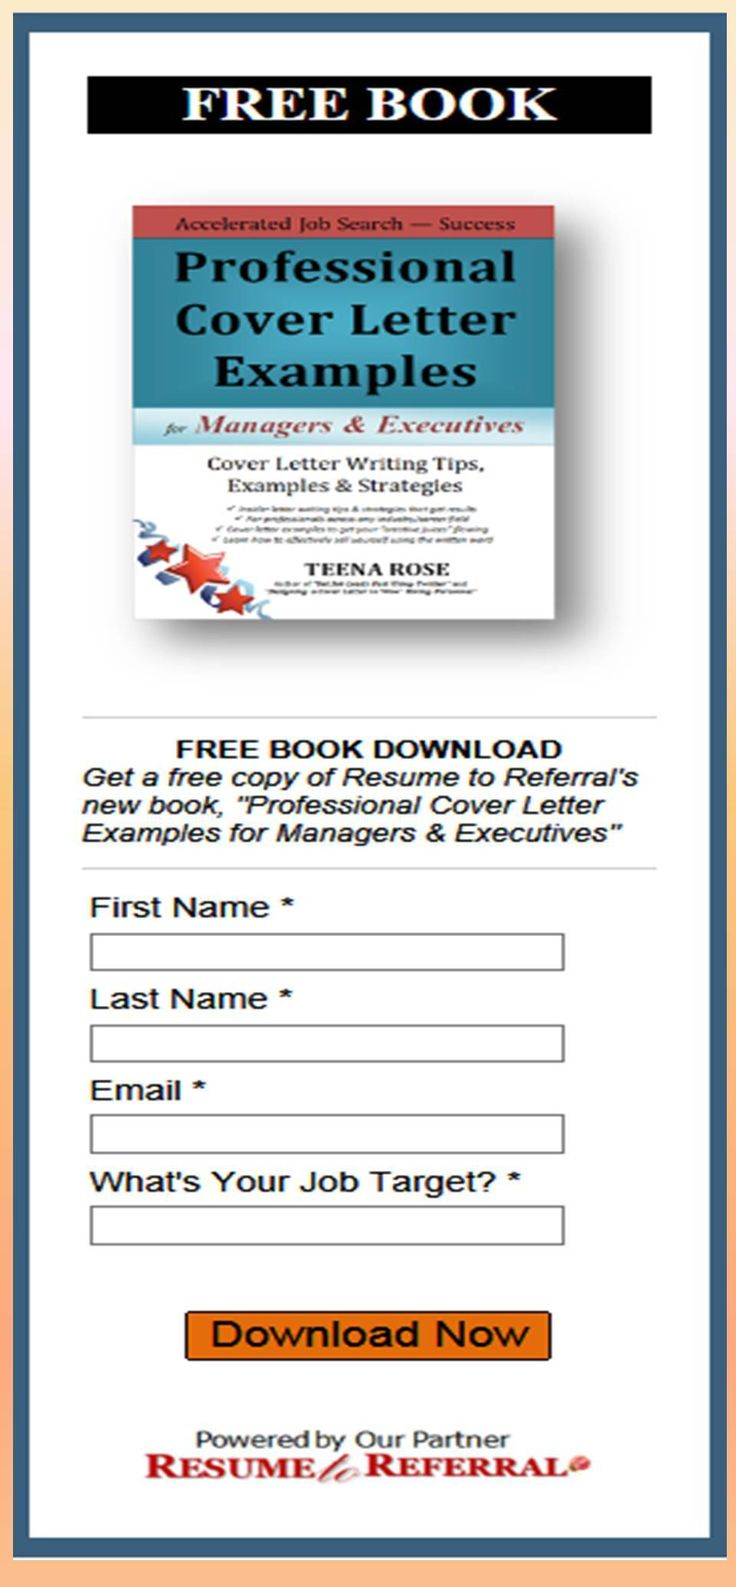 Cover Letter Examples U2014 Free Book With Cover Letters [Download]